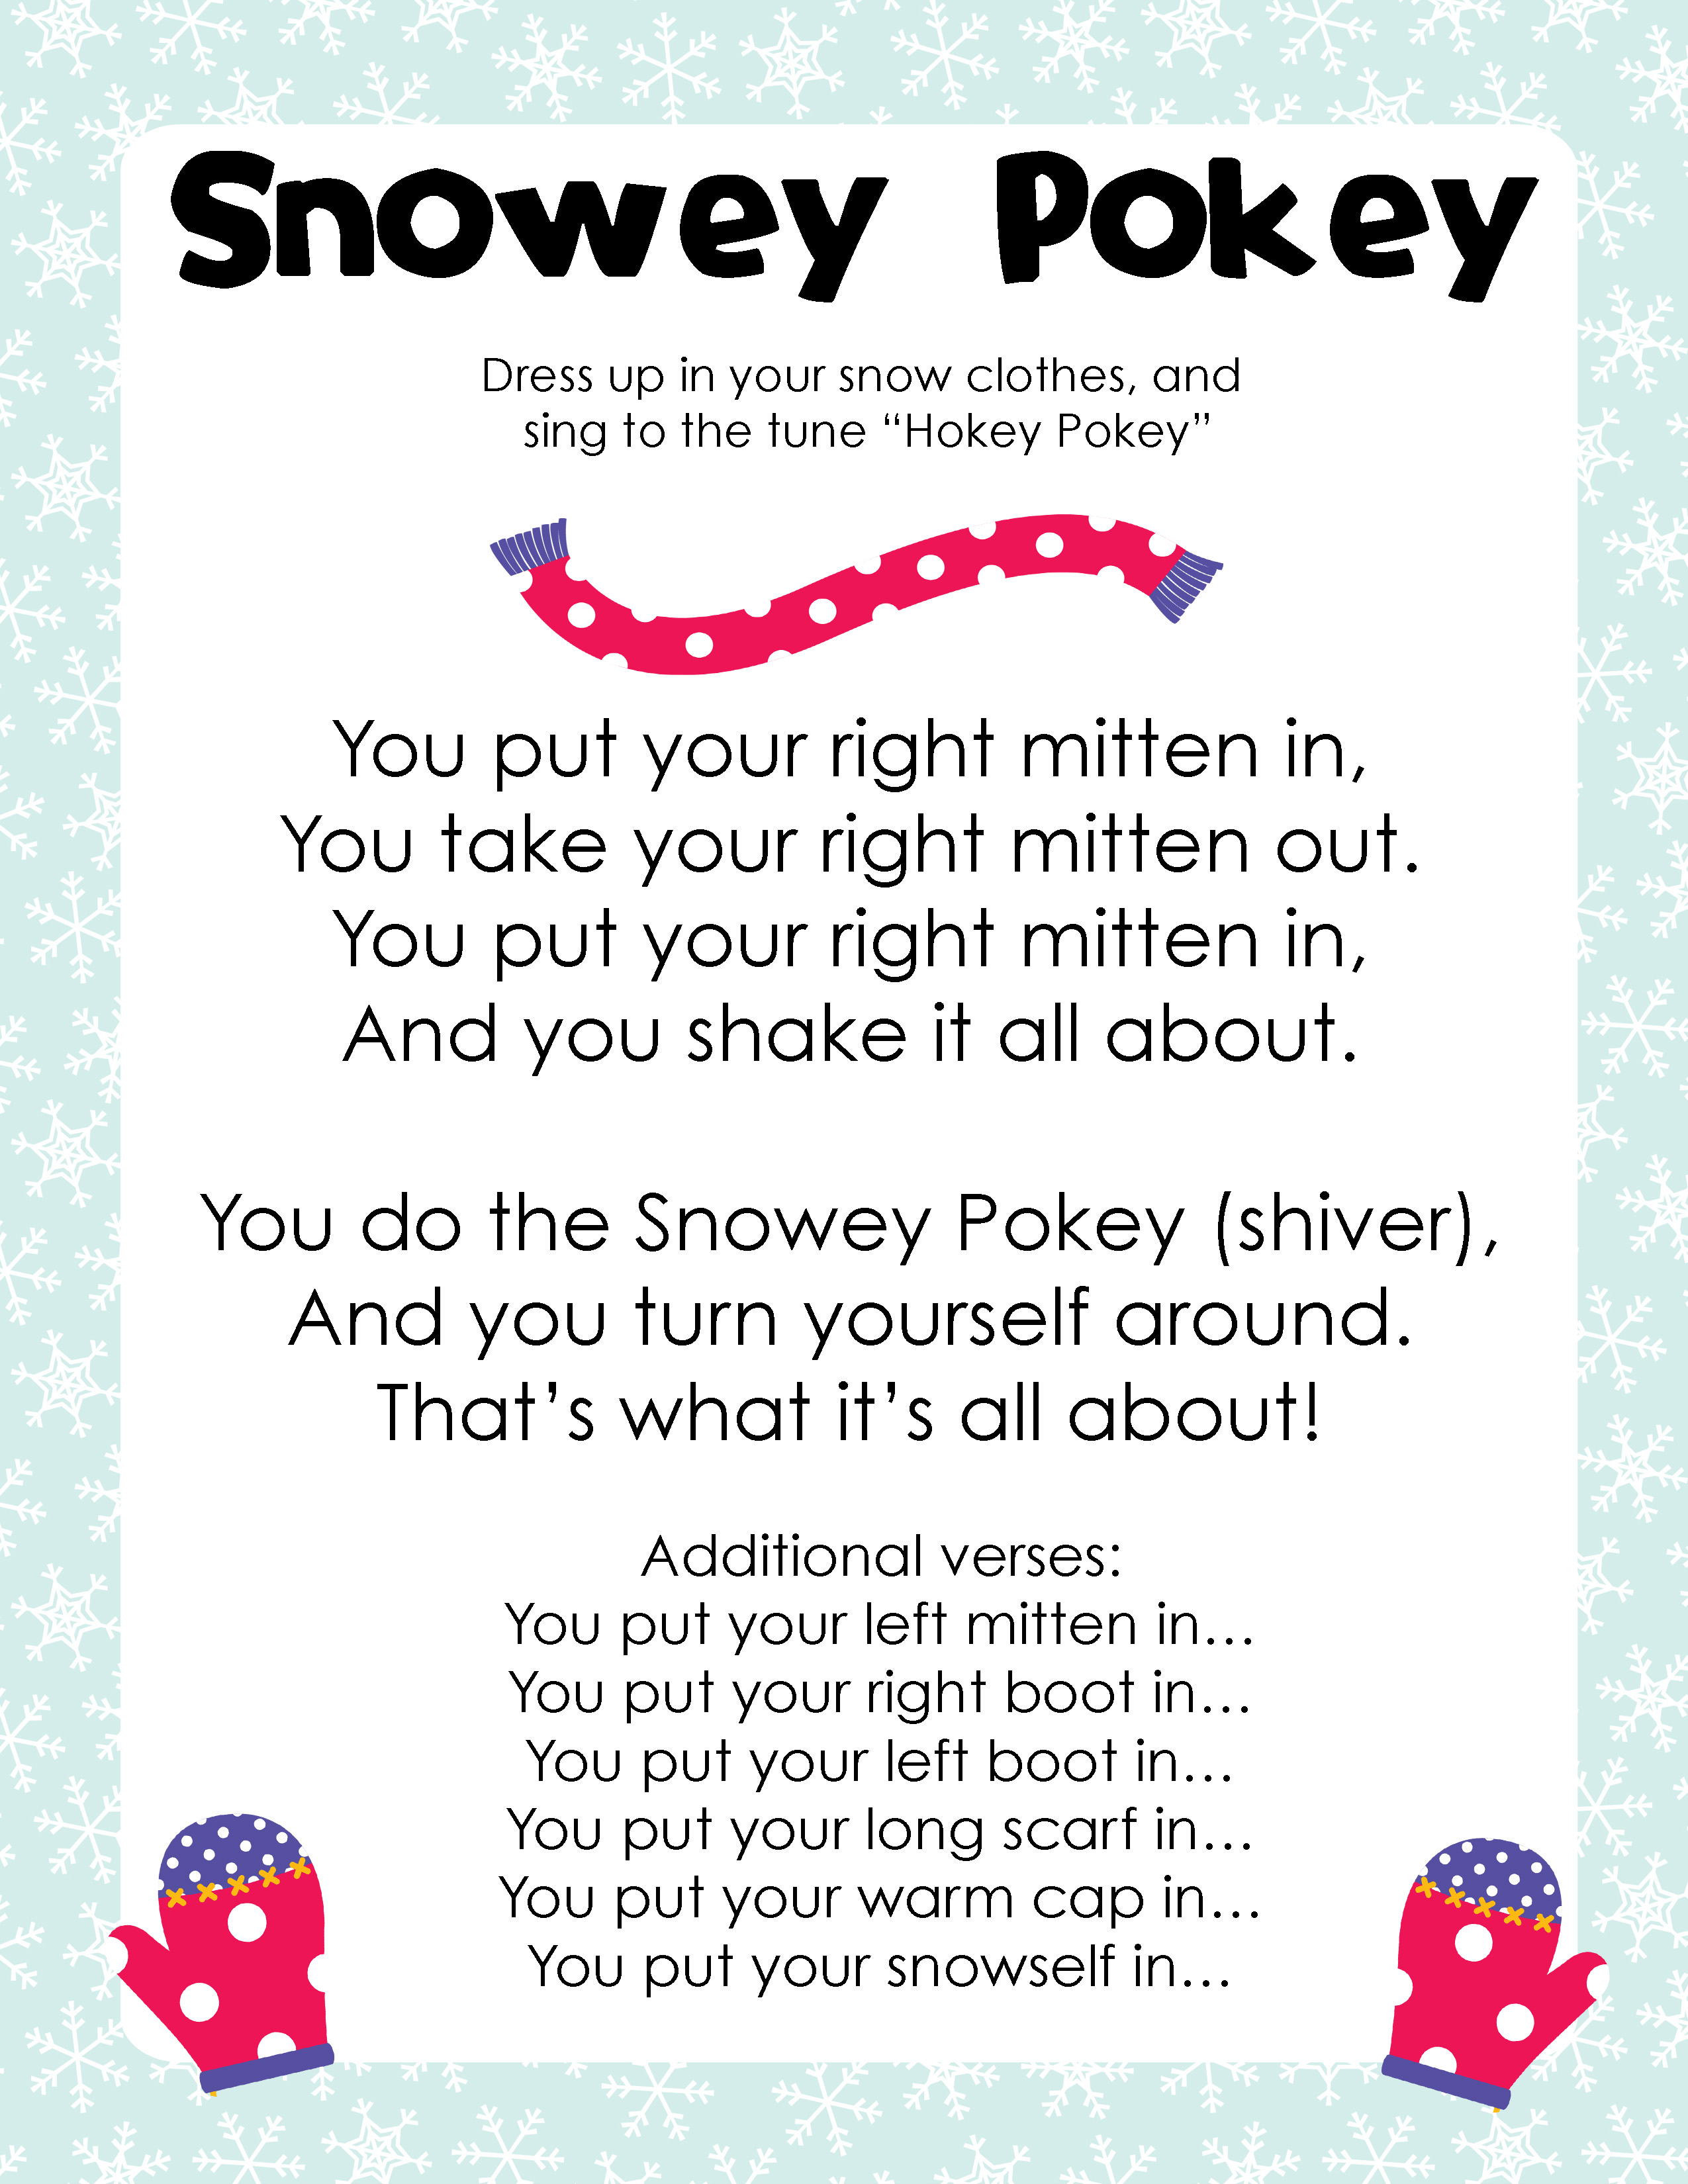 The snowey pokey quot sung to the tune of quot the hokey pokey quot clever